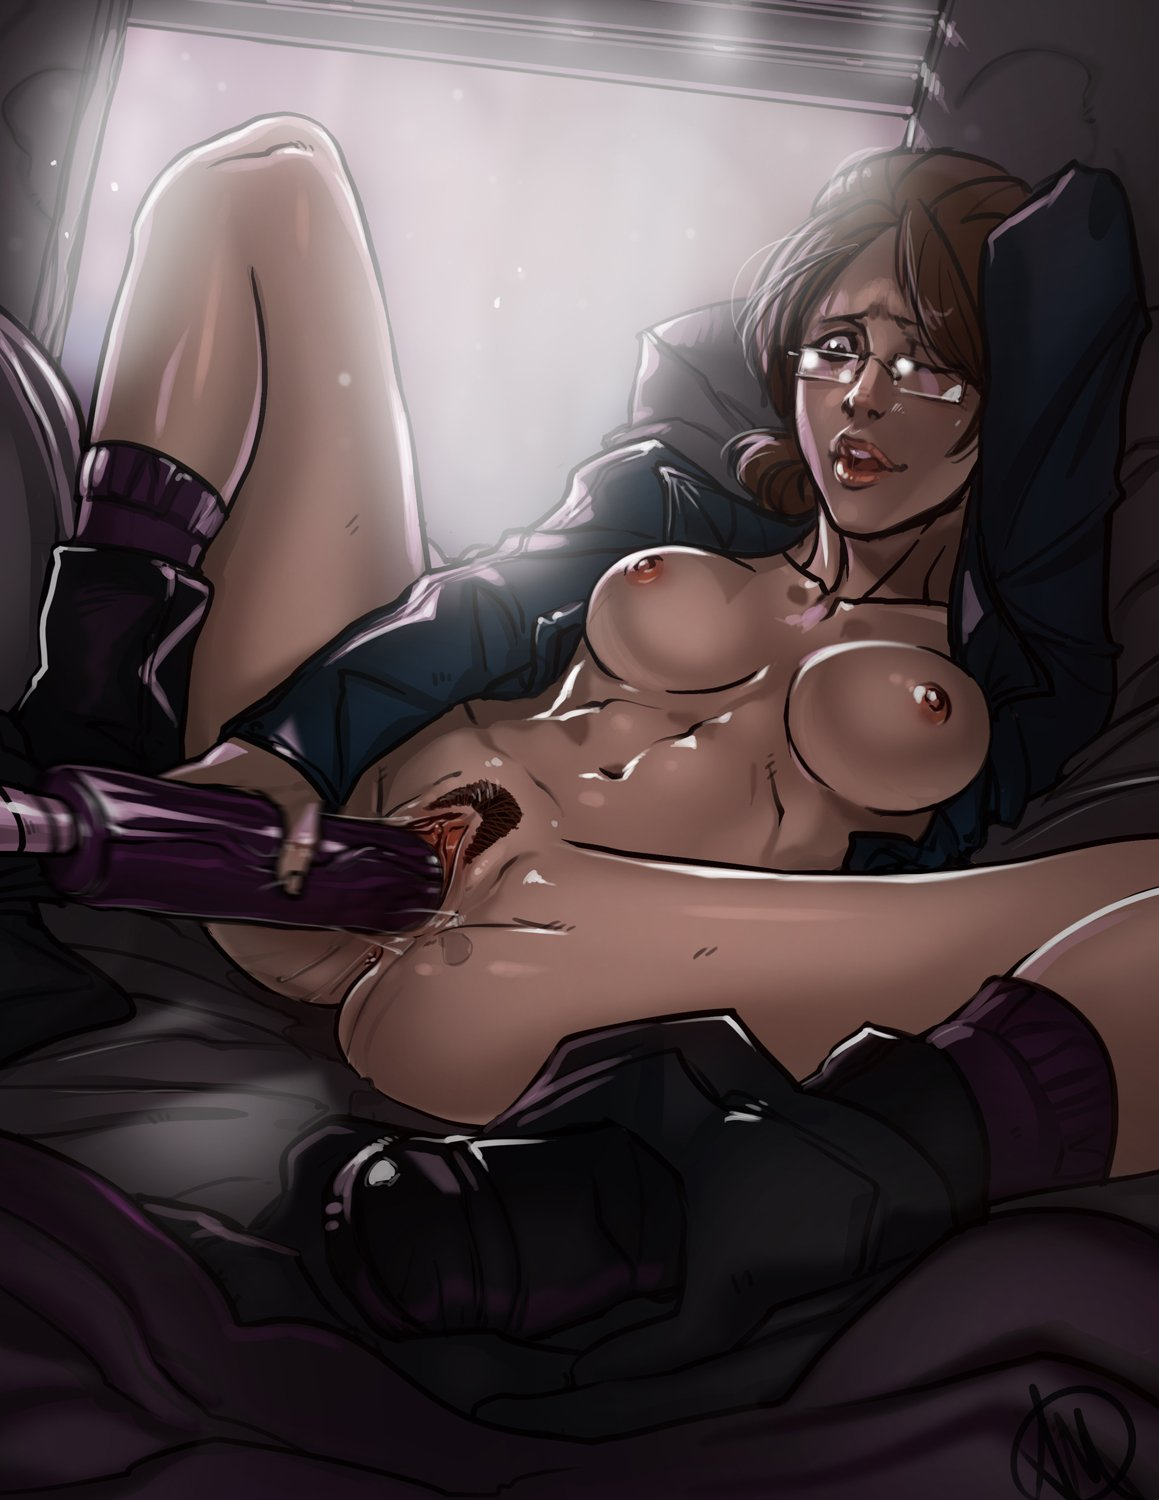 Saints row cartoon the winter sisters porn hentay movies